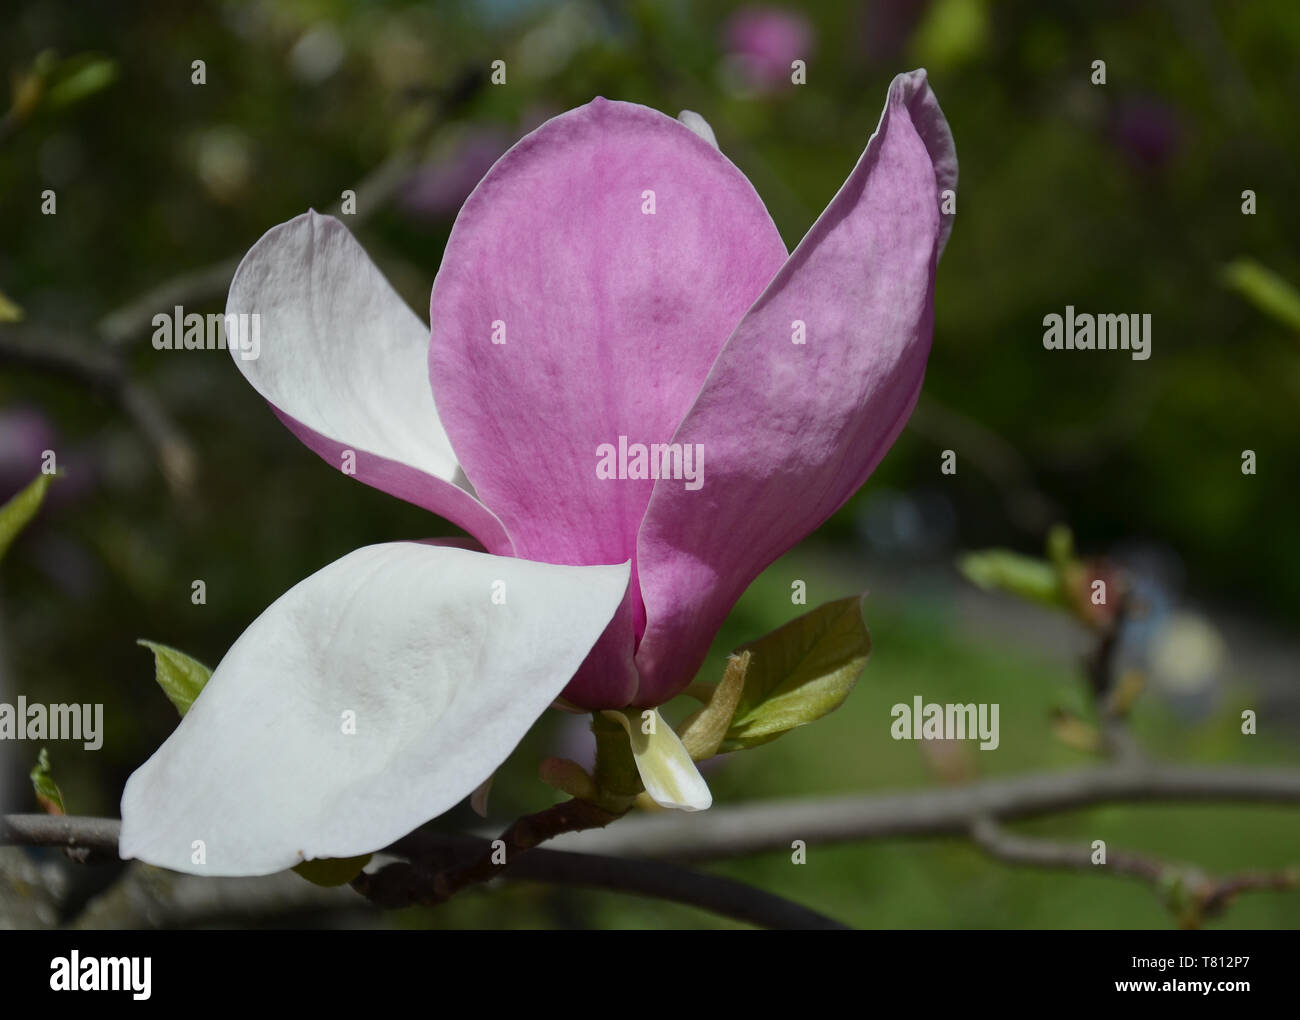 Magnolia Flower Tree Branches With Large Fragrant Magnolia Flowers